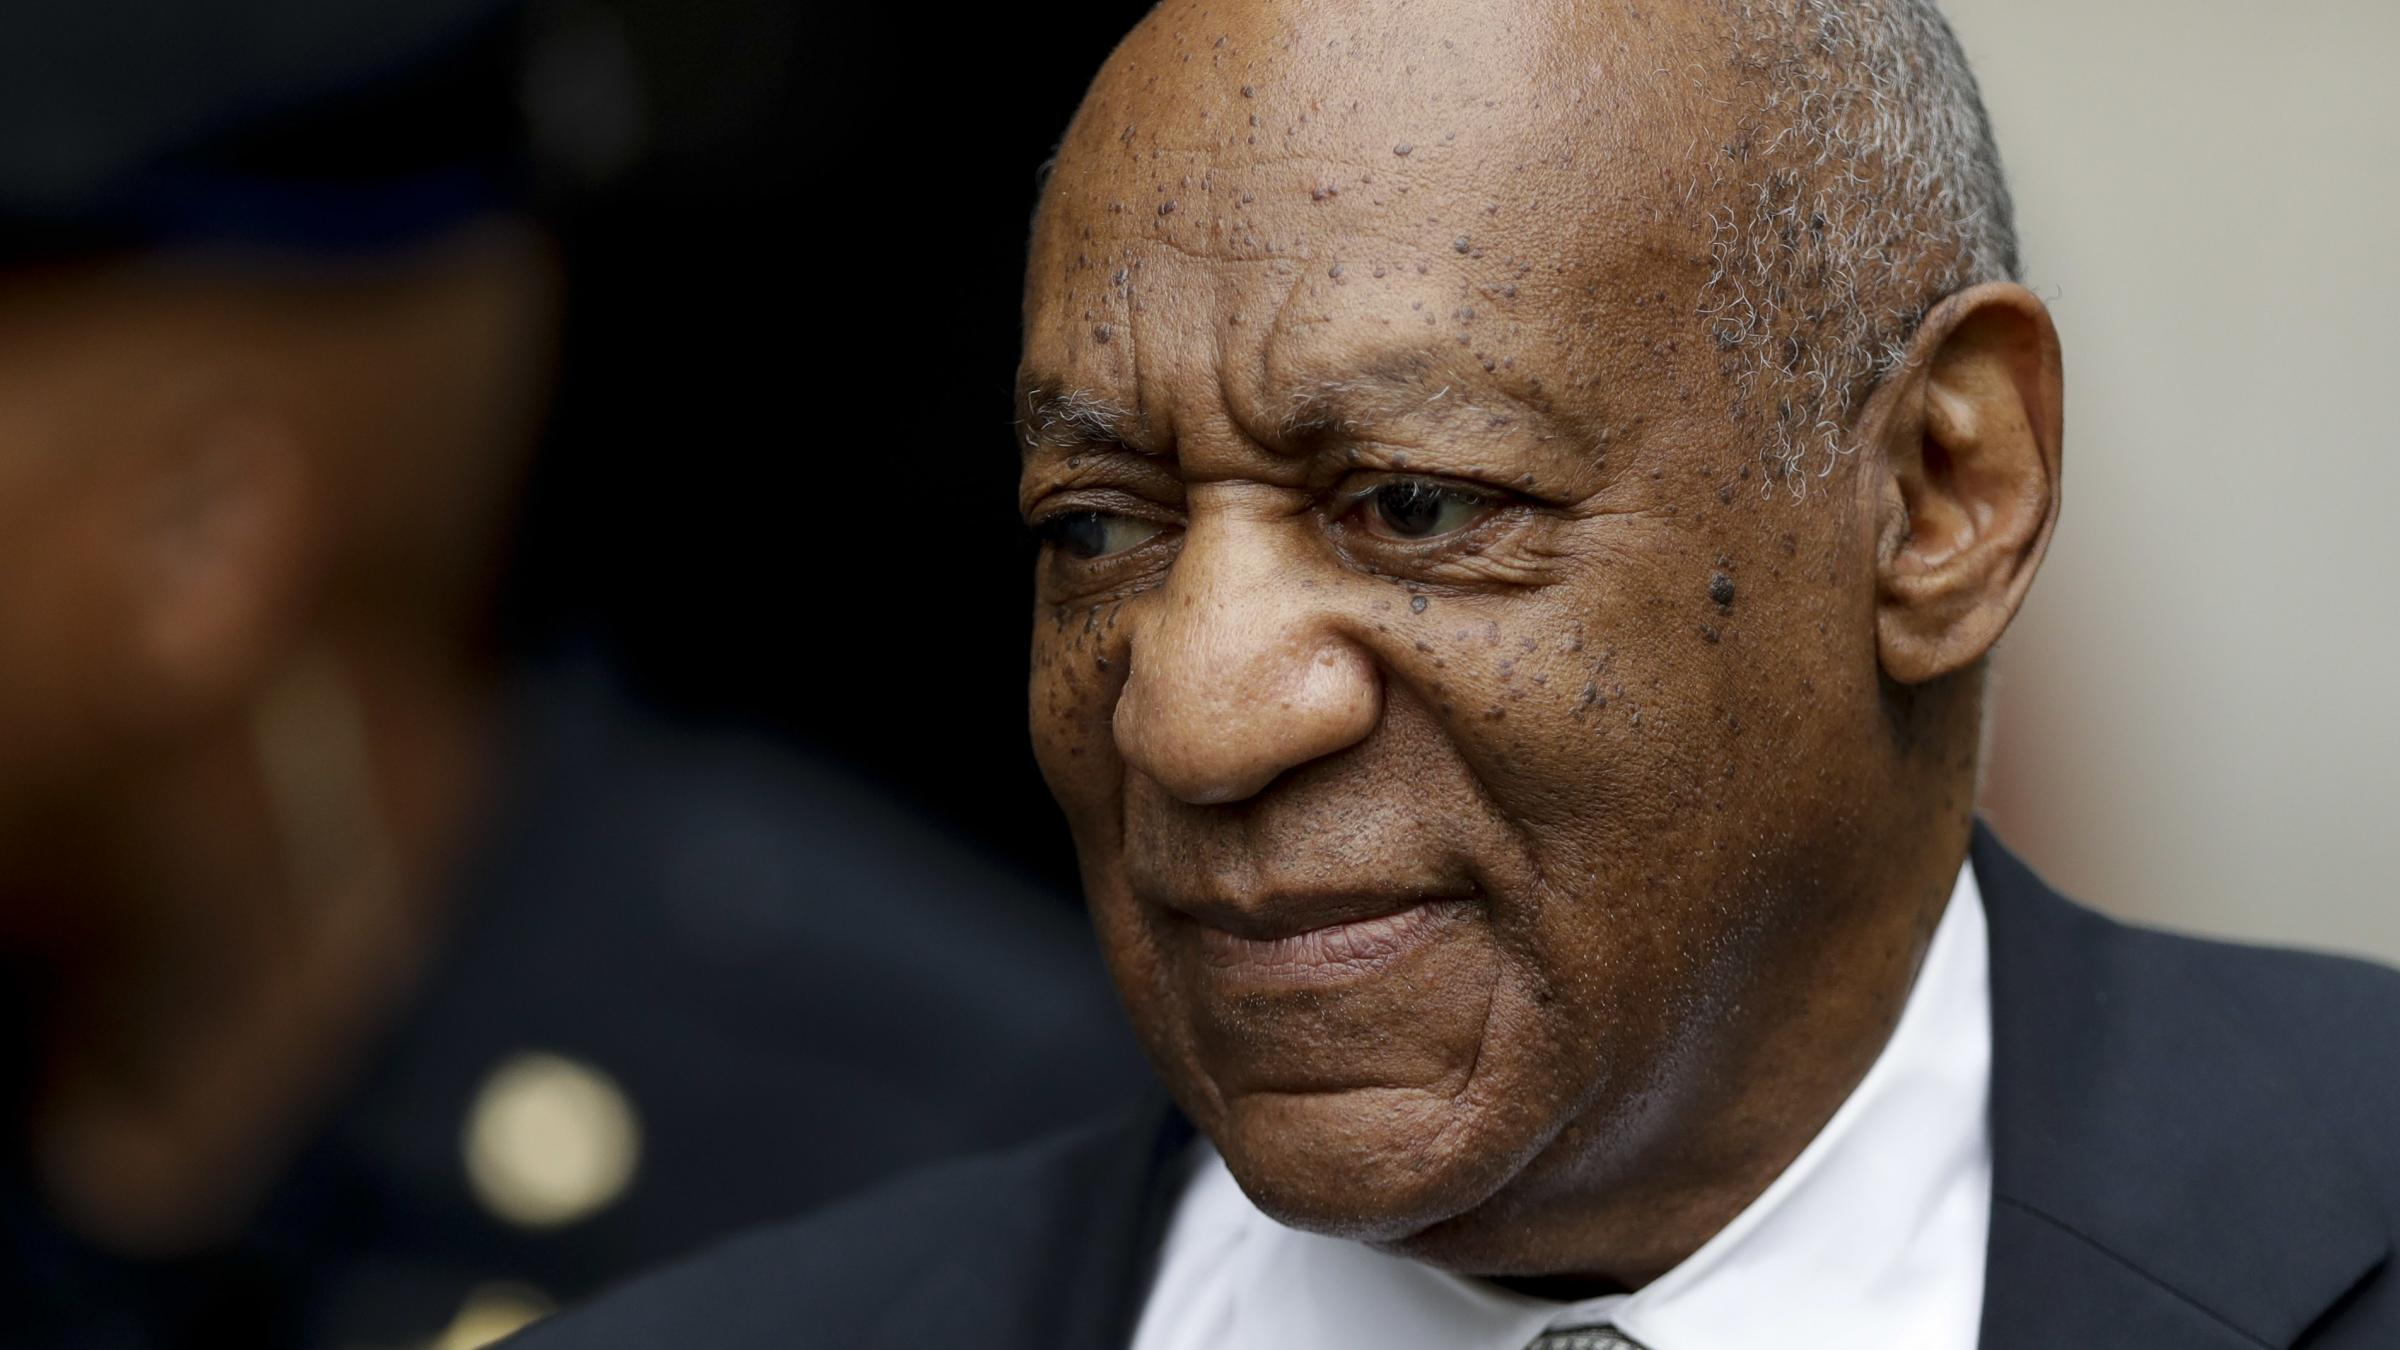 Bill Cosby sexual assault case ends in a mistrial